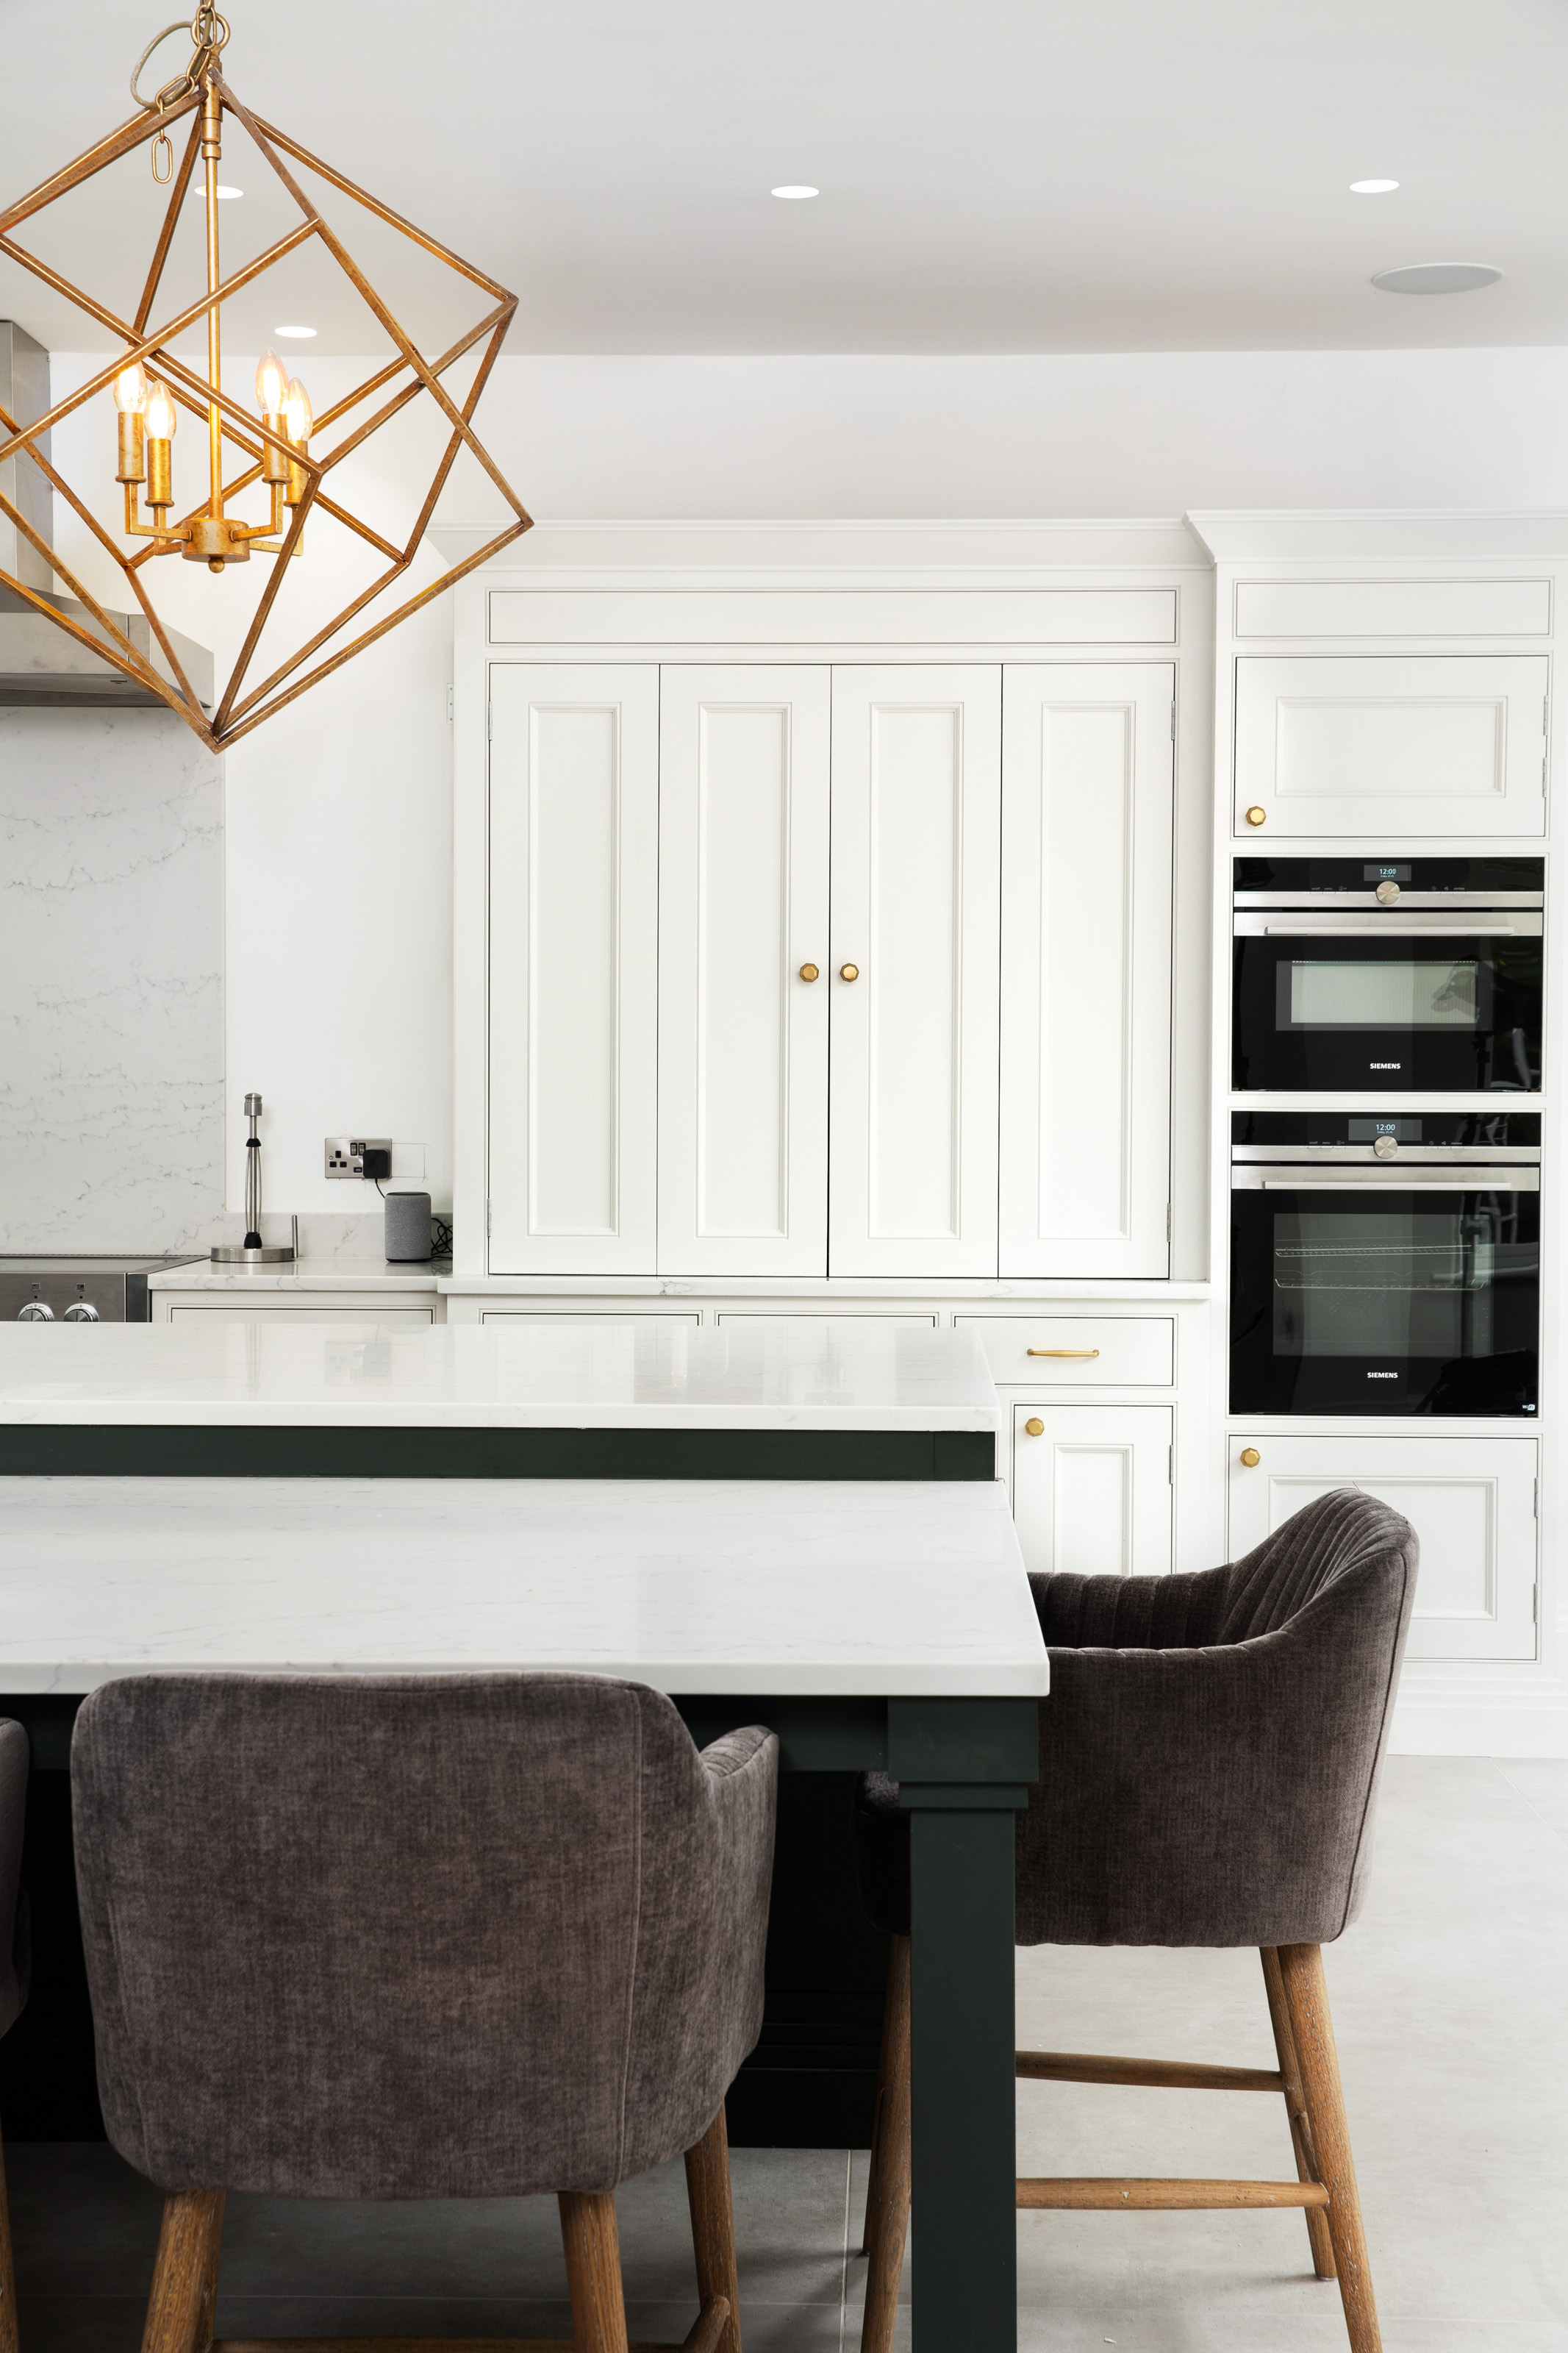 Watsons_Kitchens_Harrogate-8